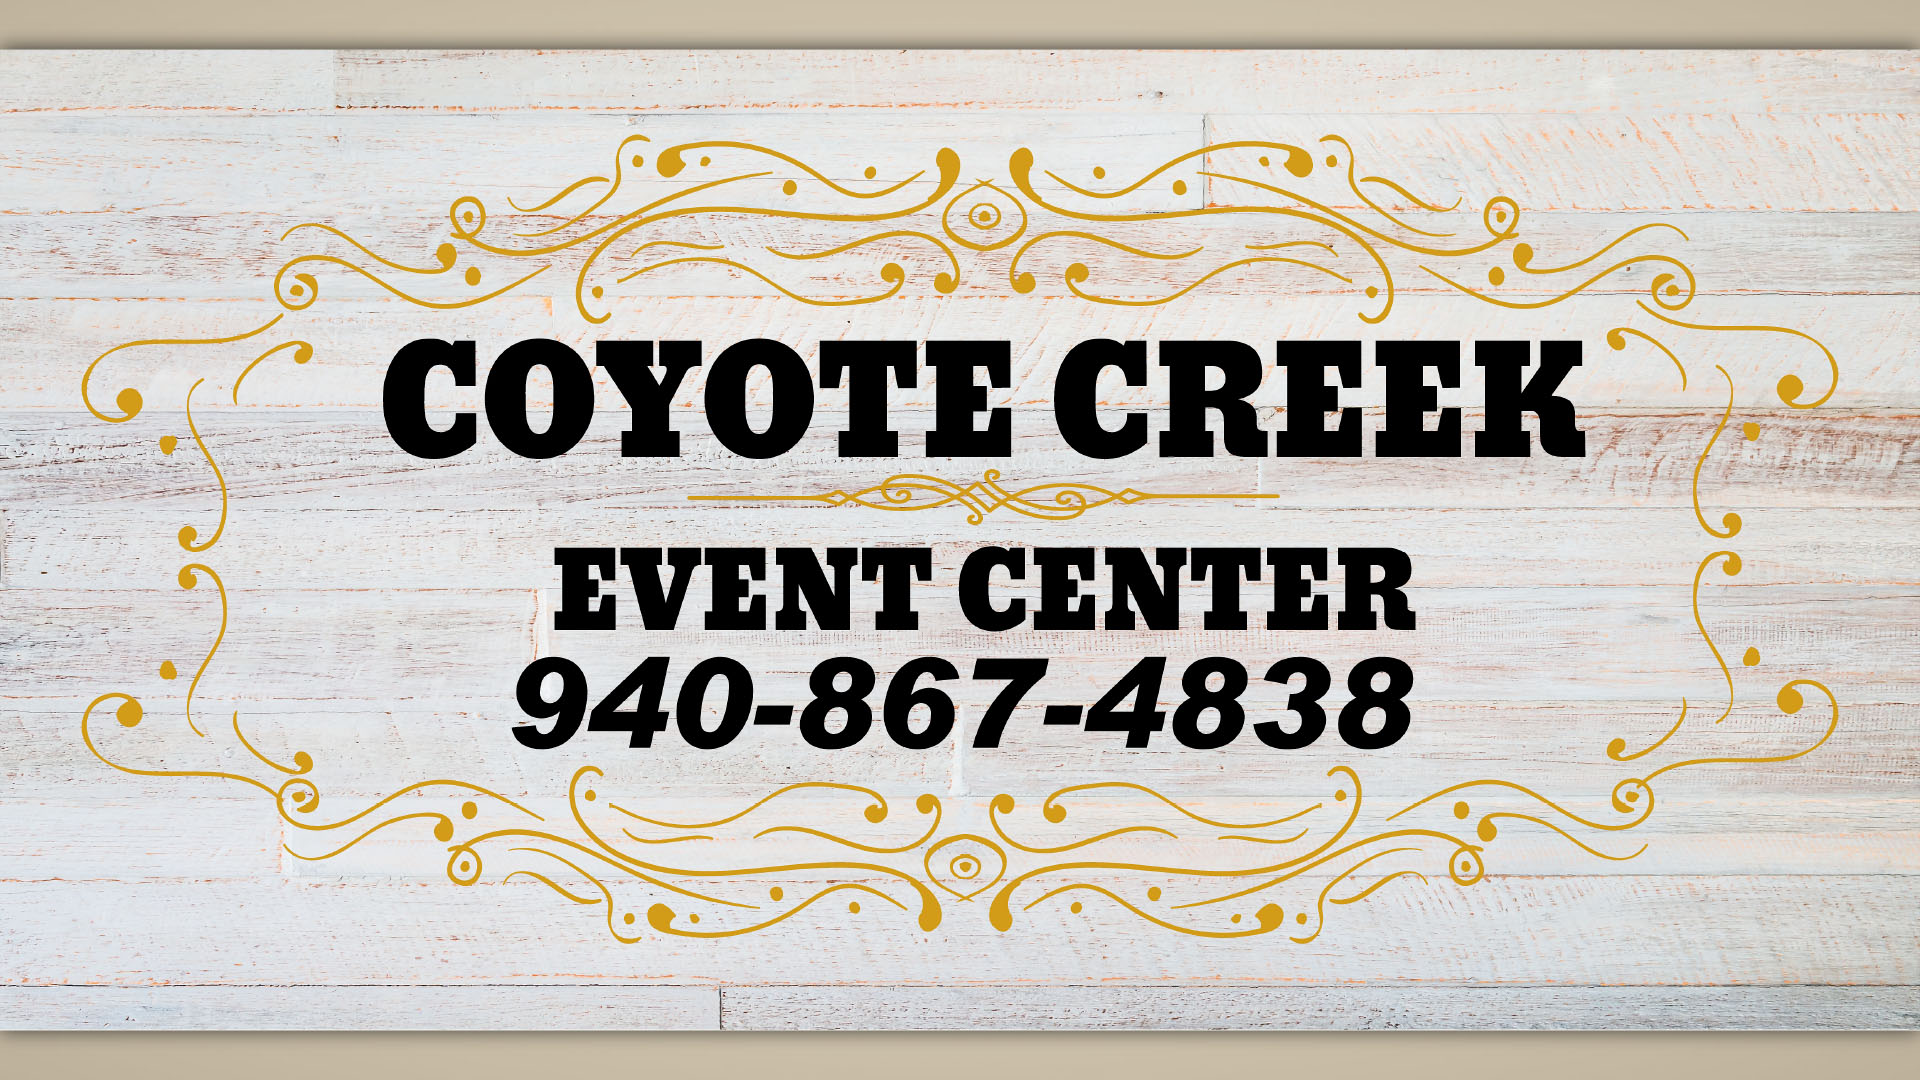 Coyote Creek Event Center